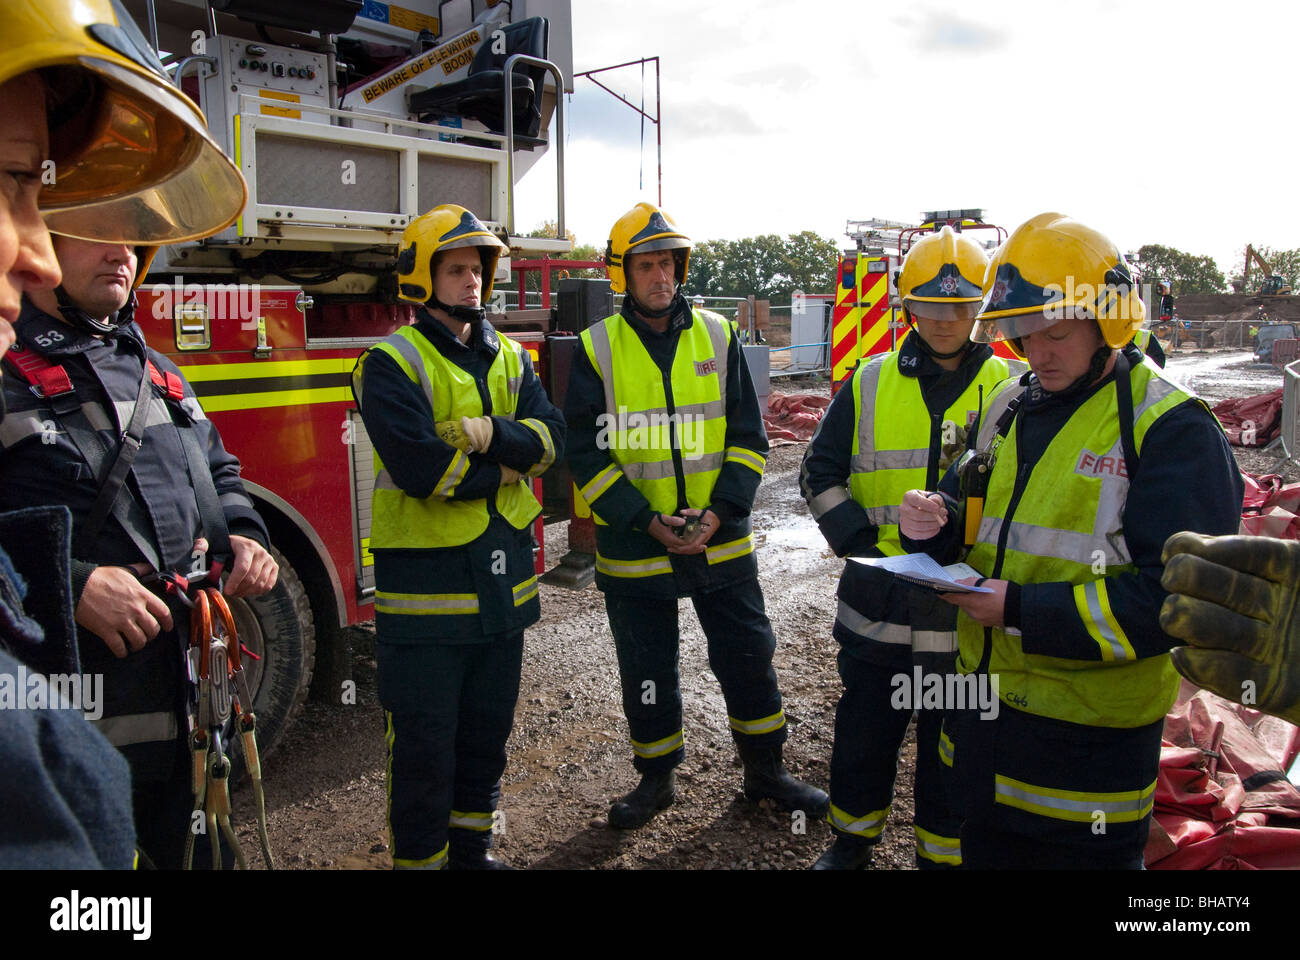 Incident commander fire officer instructing his team prior to a training exercise - Stock Image